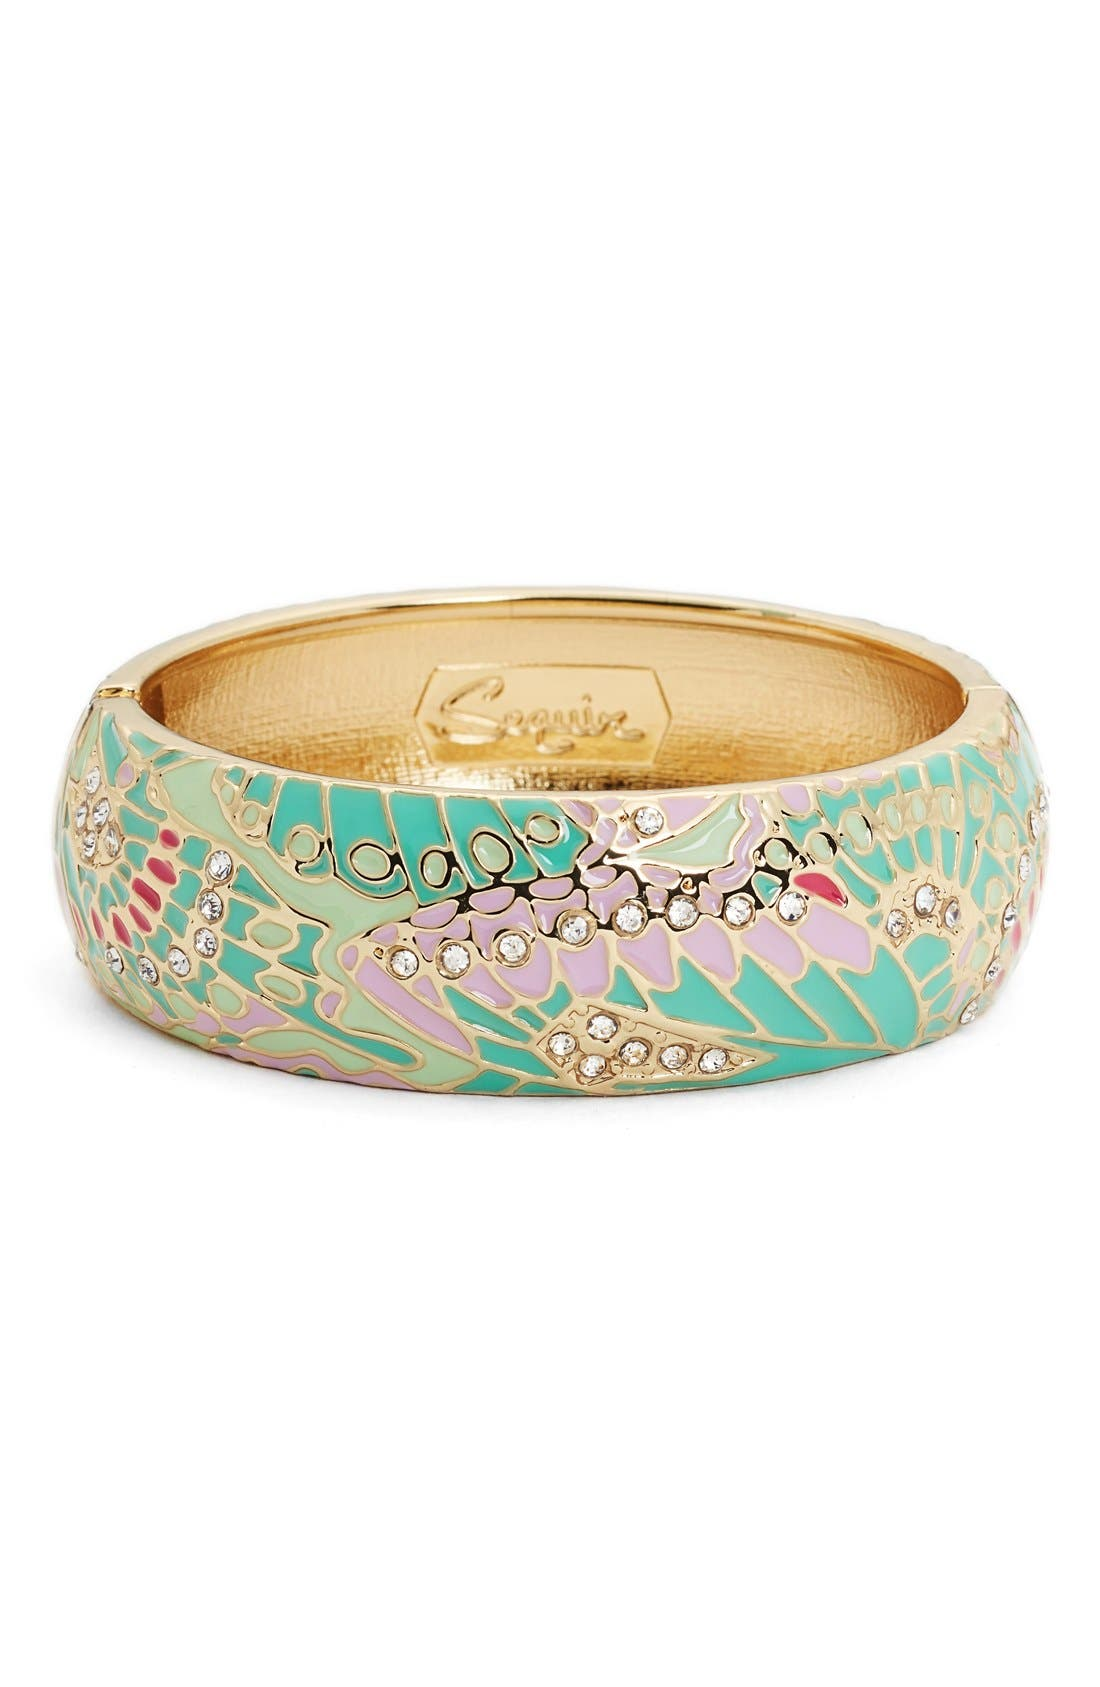 SEQUIN Mariposa Wide Bangle in Mint